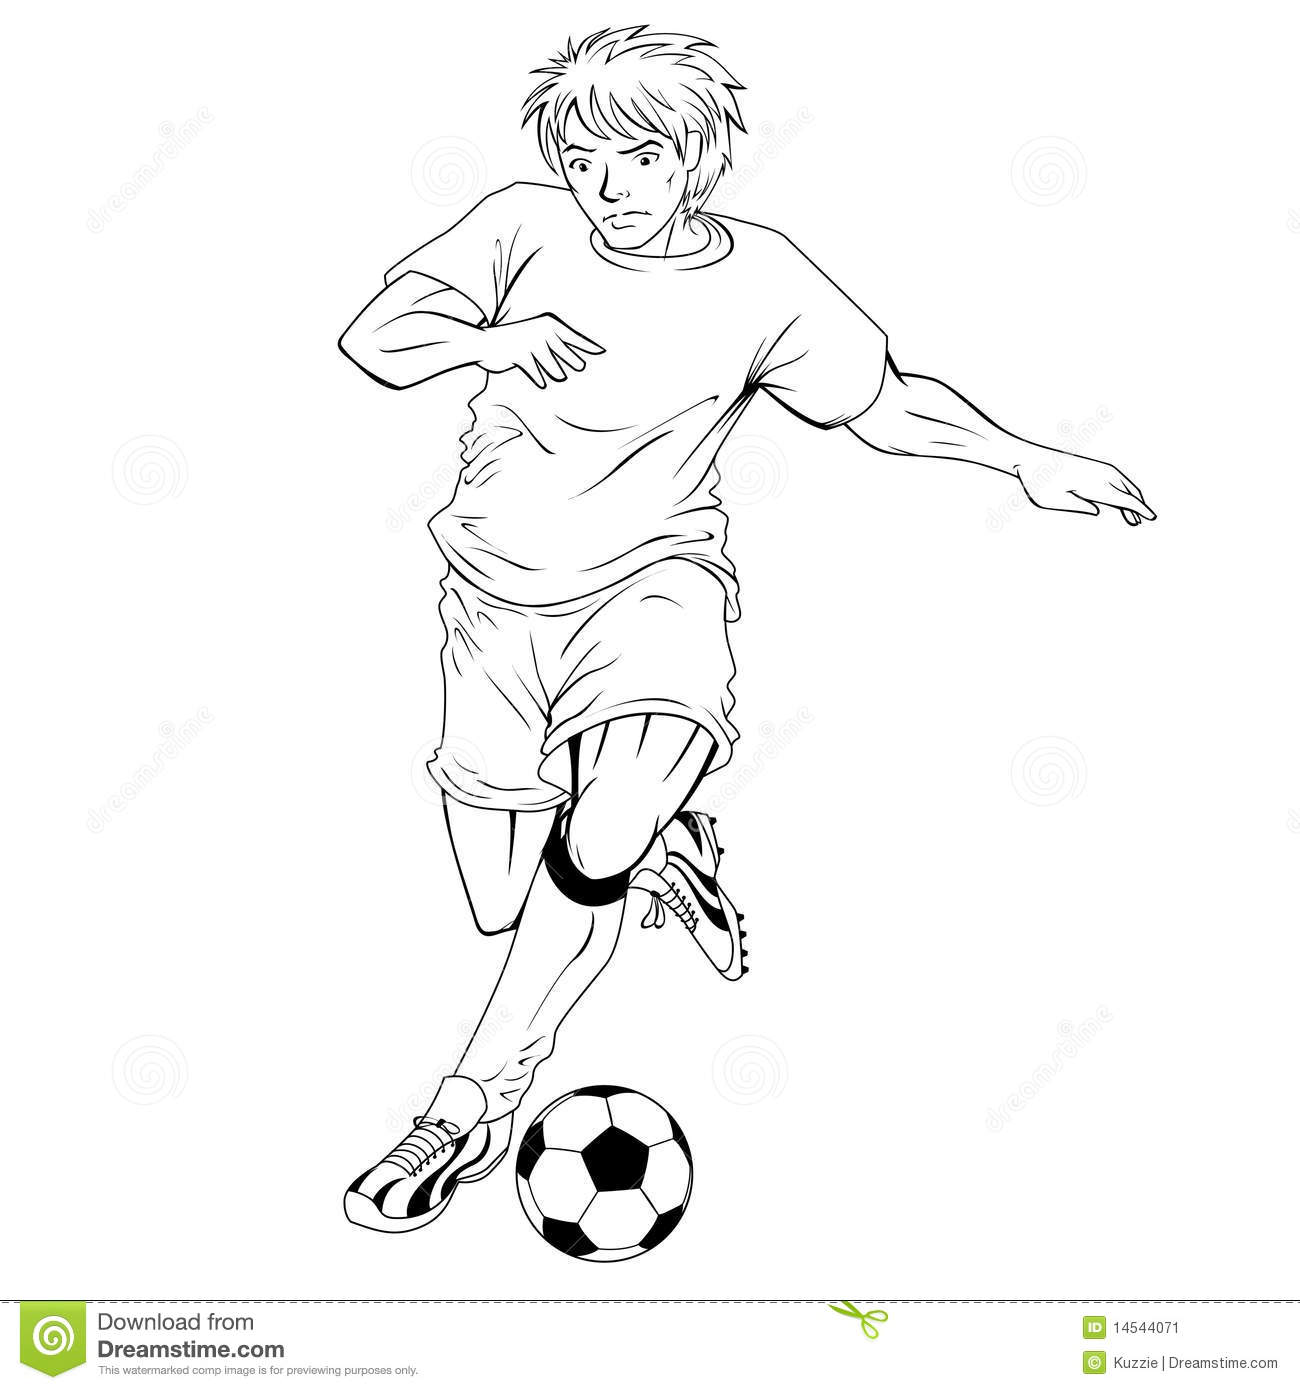 Line Drawing Football : A football player lineart stock vector illustration of